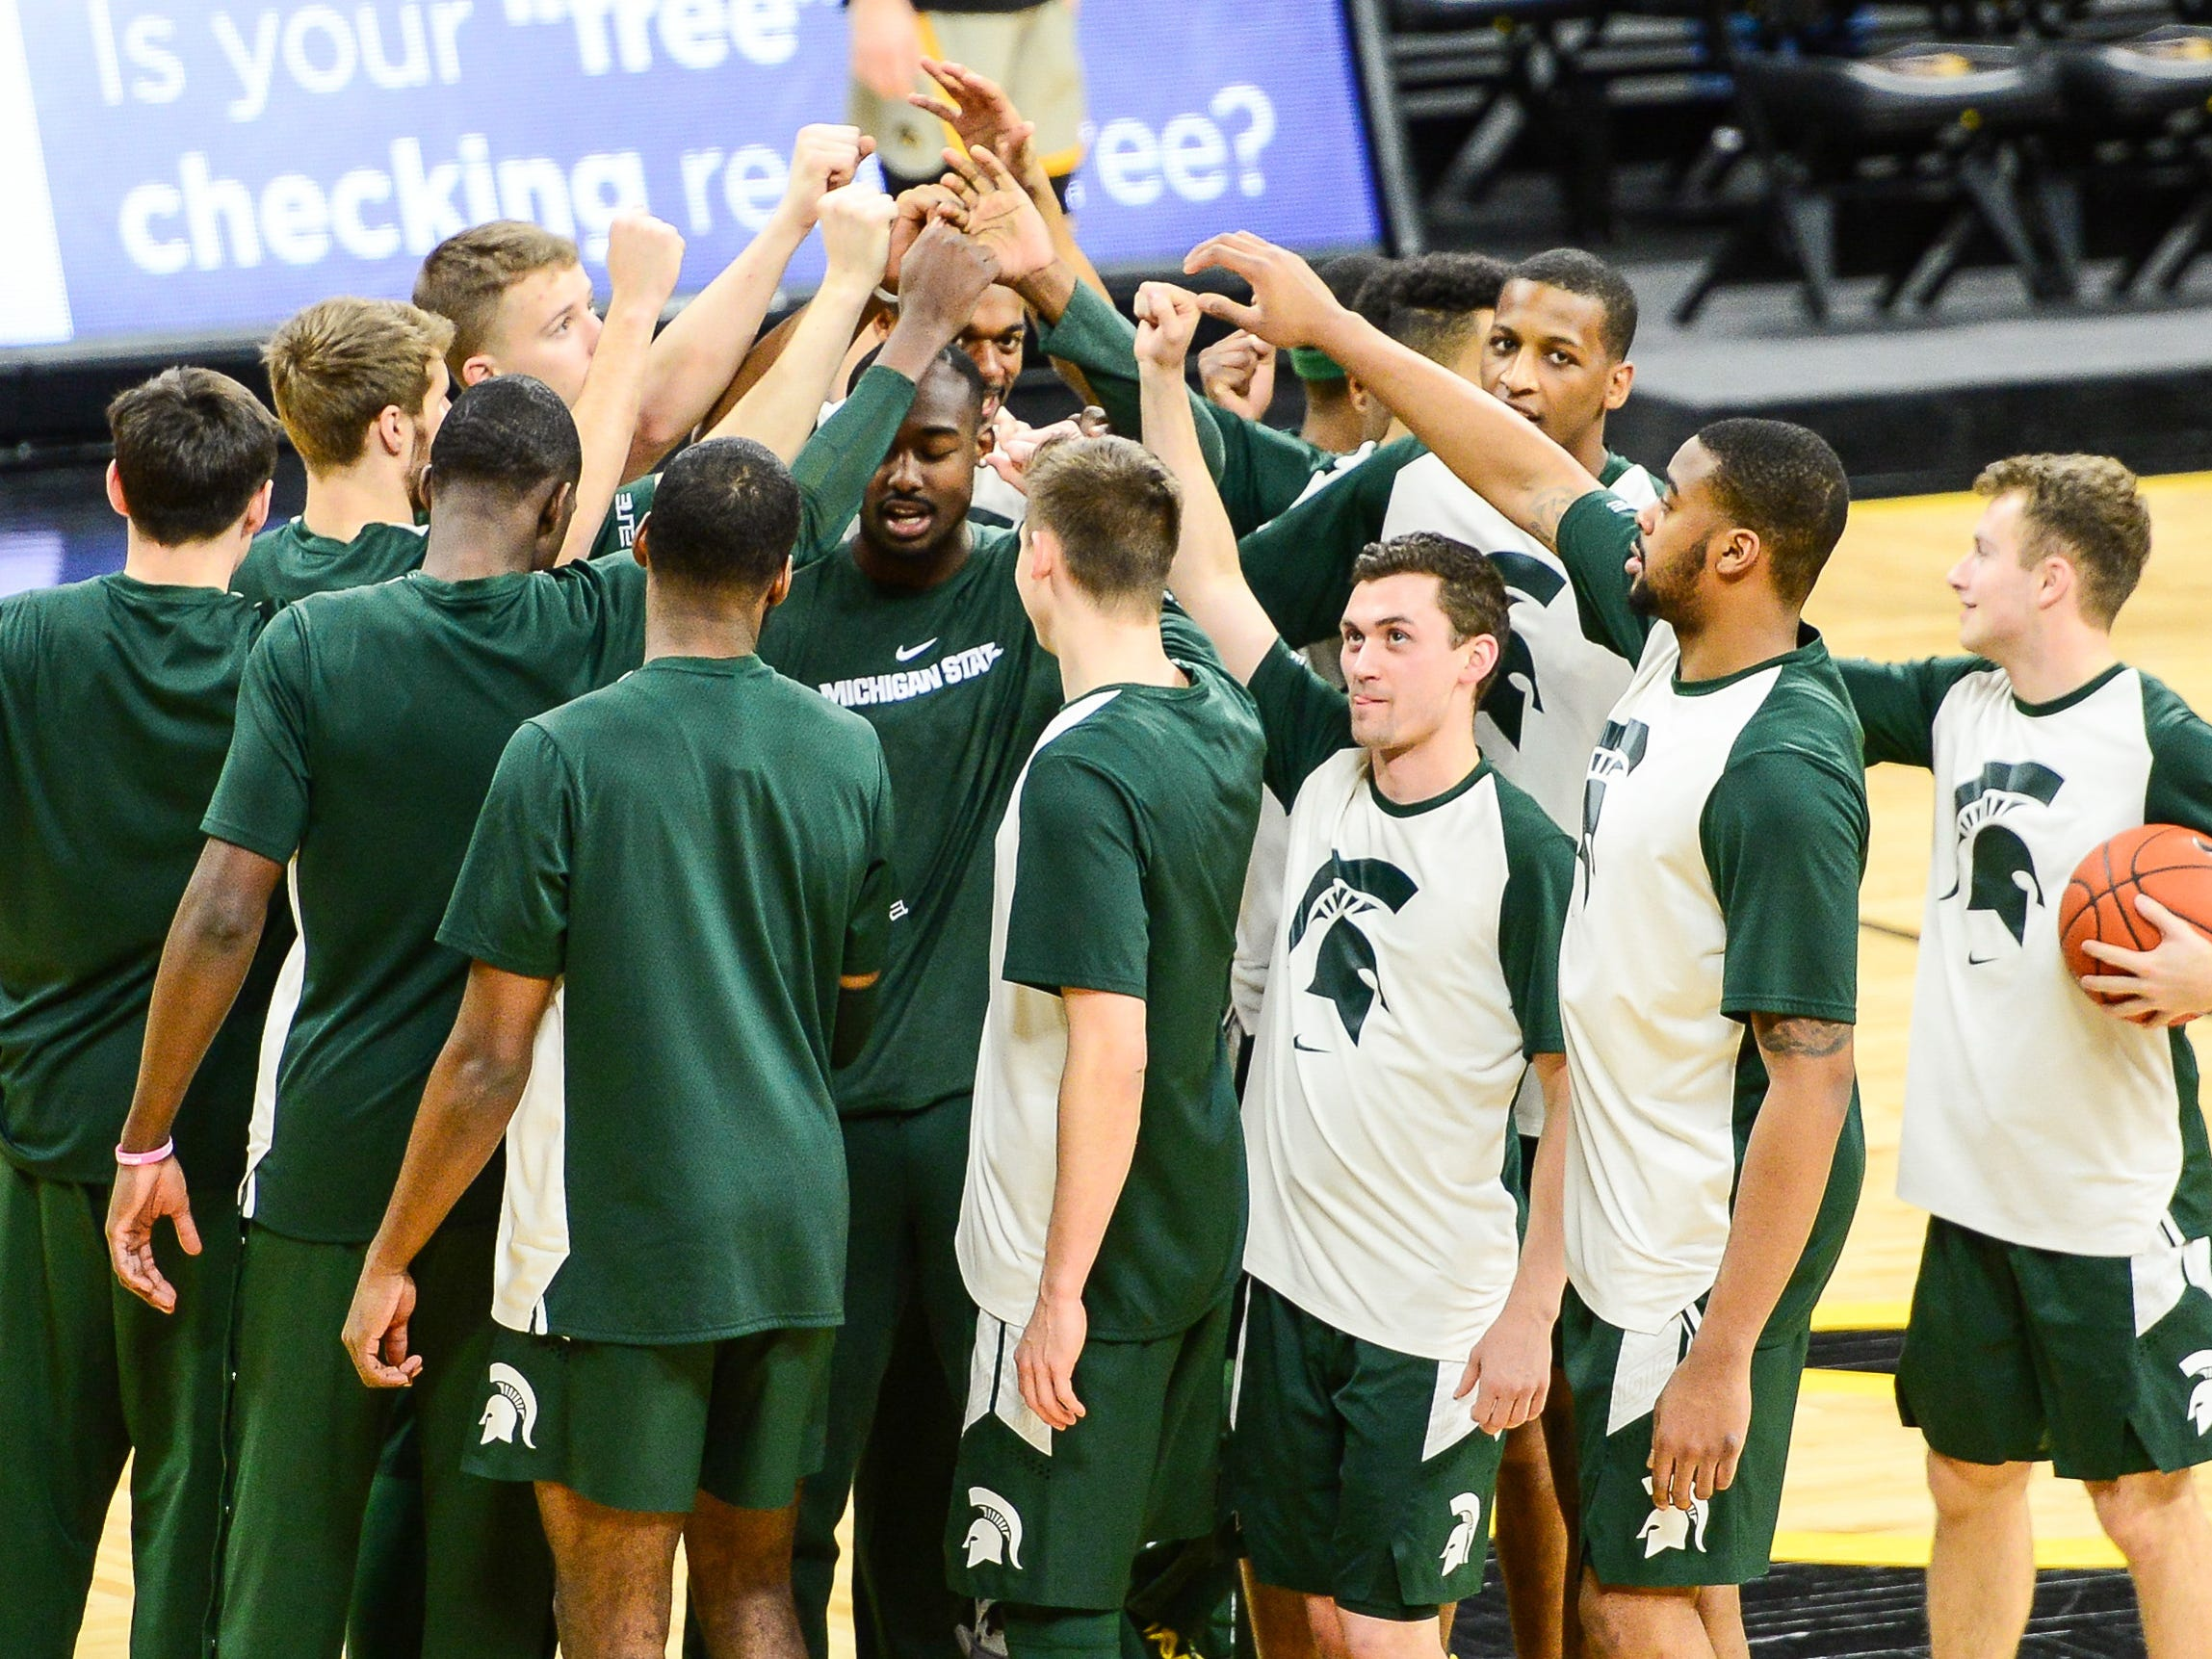 Michigan State Spartans player huddle on court prior to their game against the Iowa Hawkeyes at Carver-Hawkeye Arena.